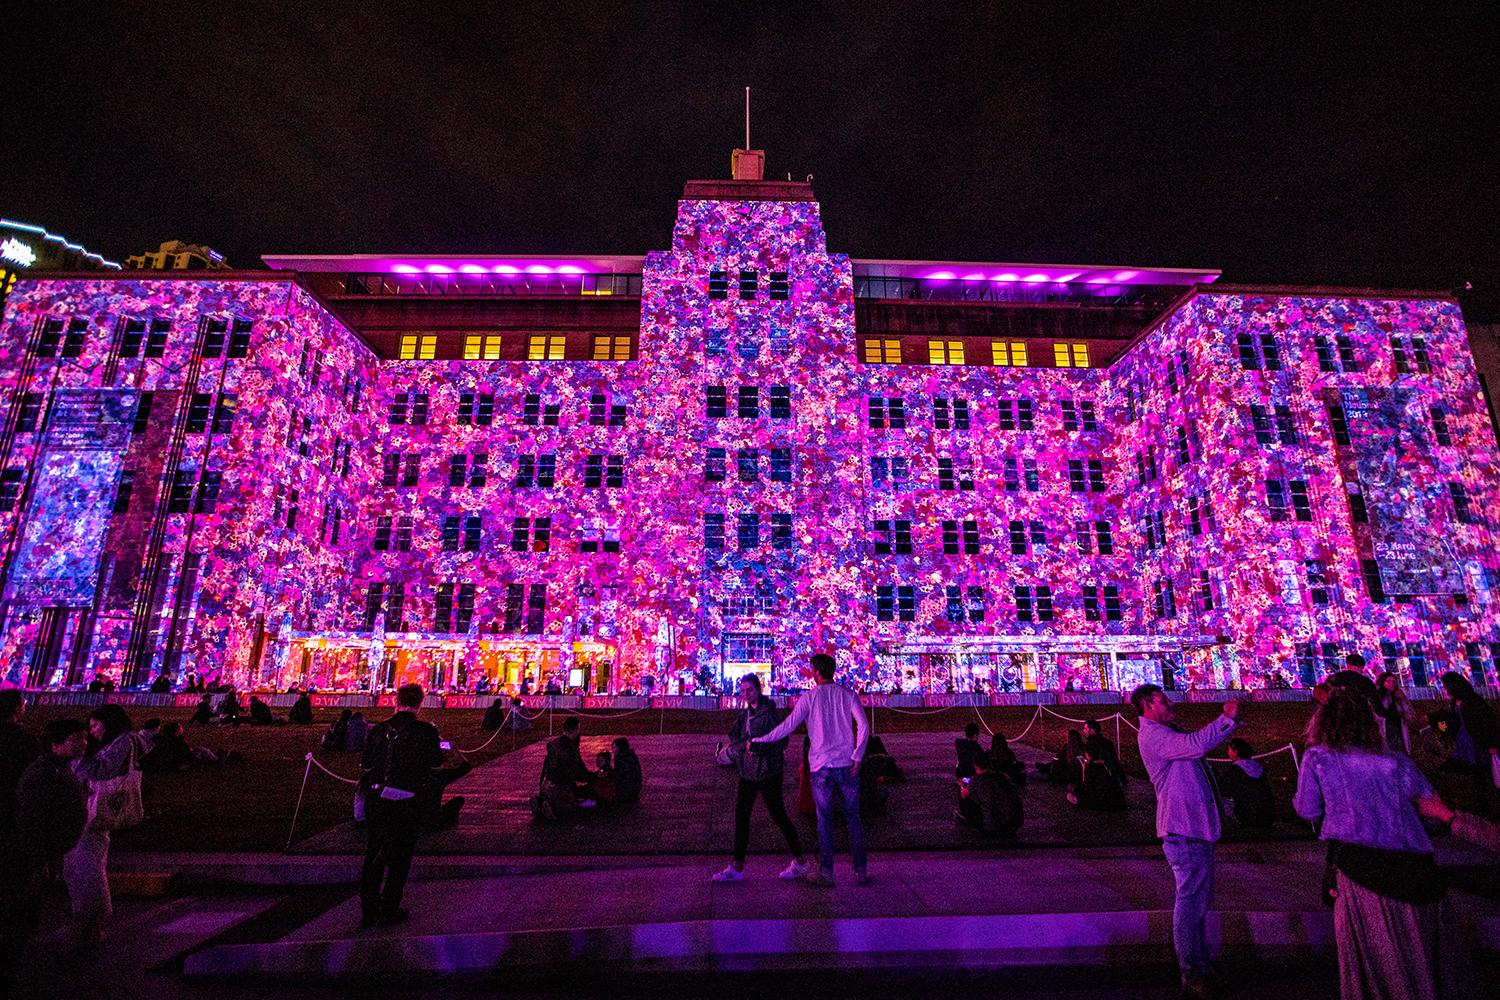 Crowds enjoying the Let Me Down light projection on the Museum of Contemporary Art (MCA) Australia building in The Rocks during Vivid Sydney 2019